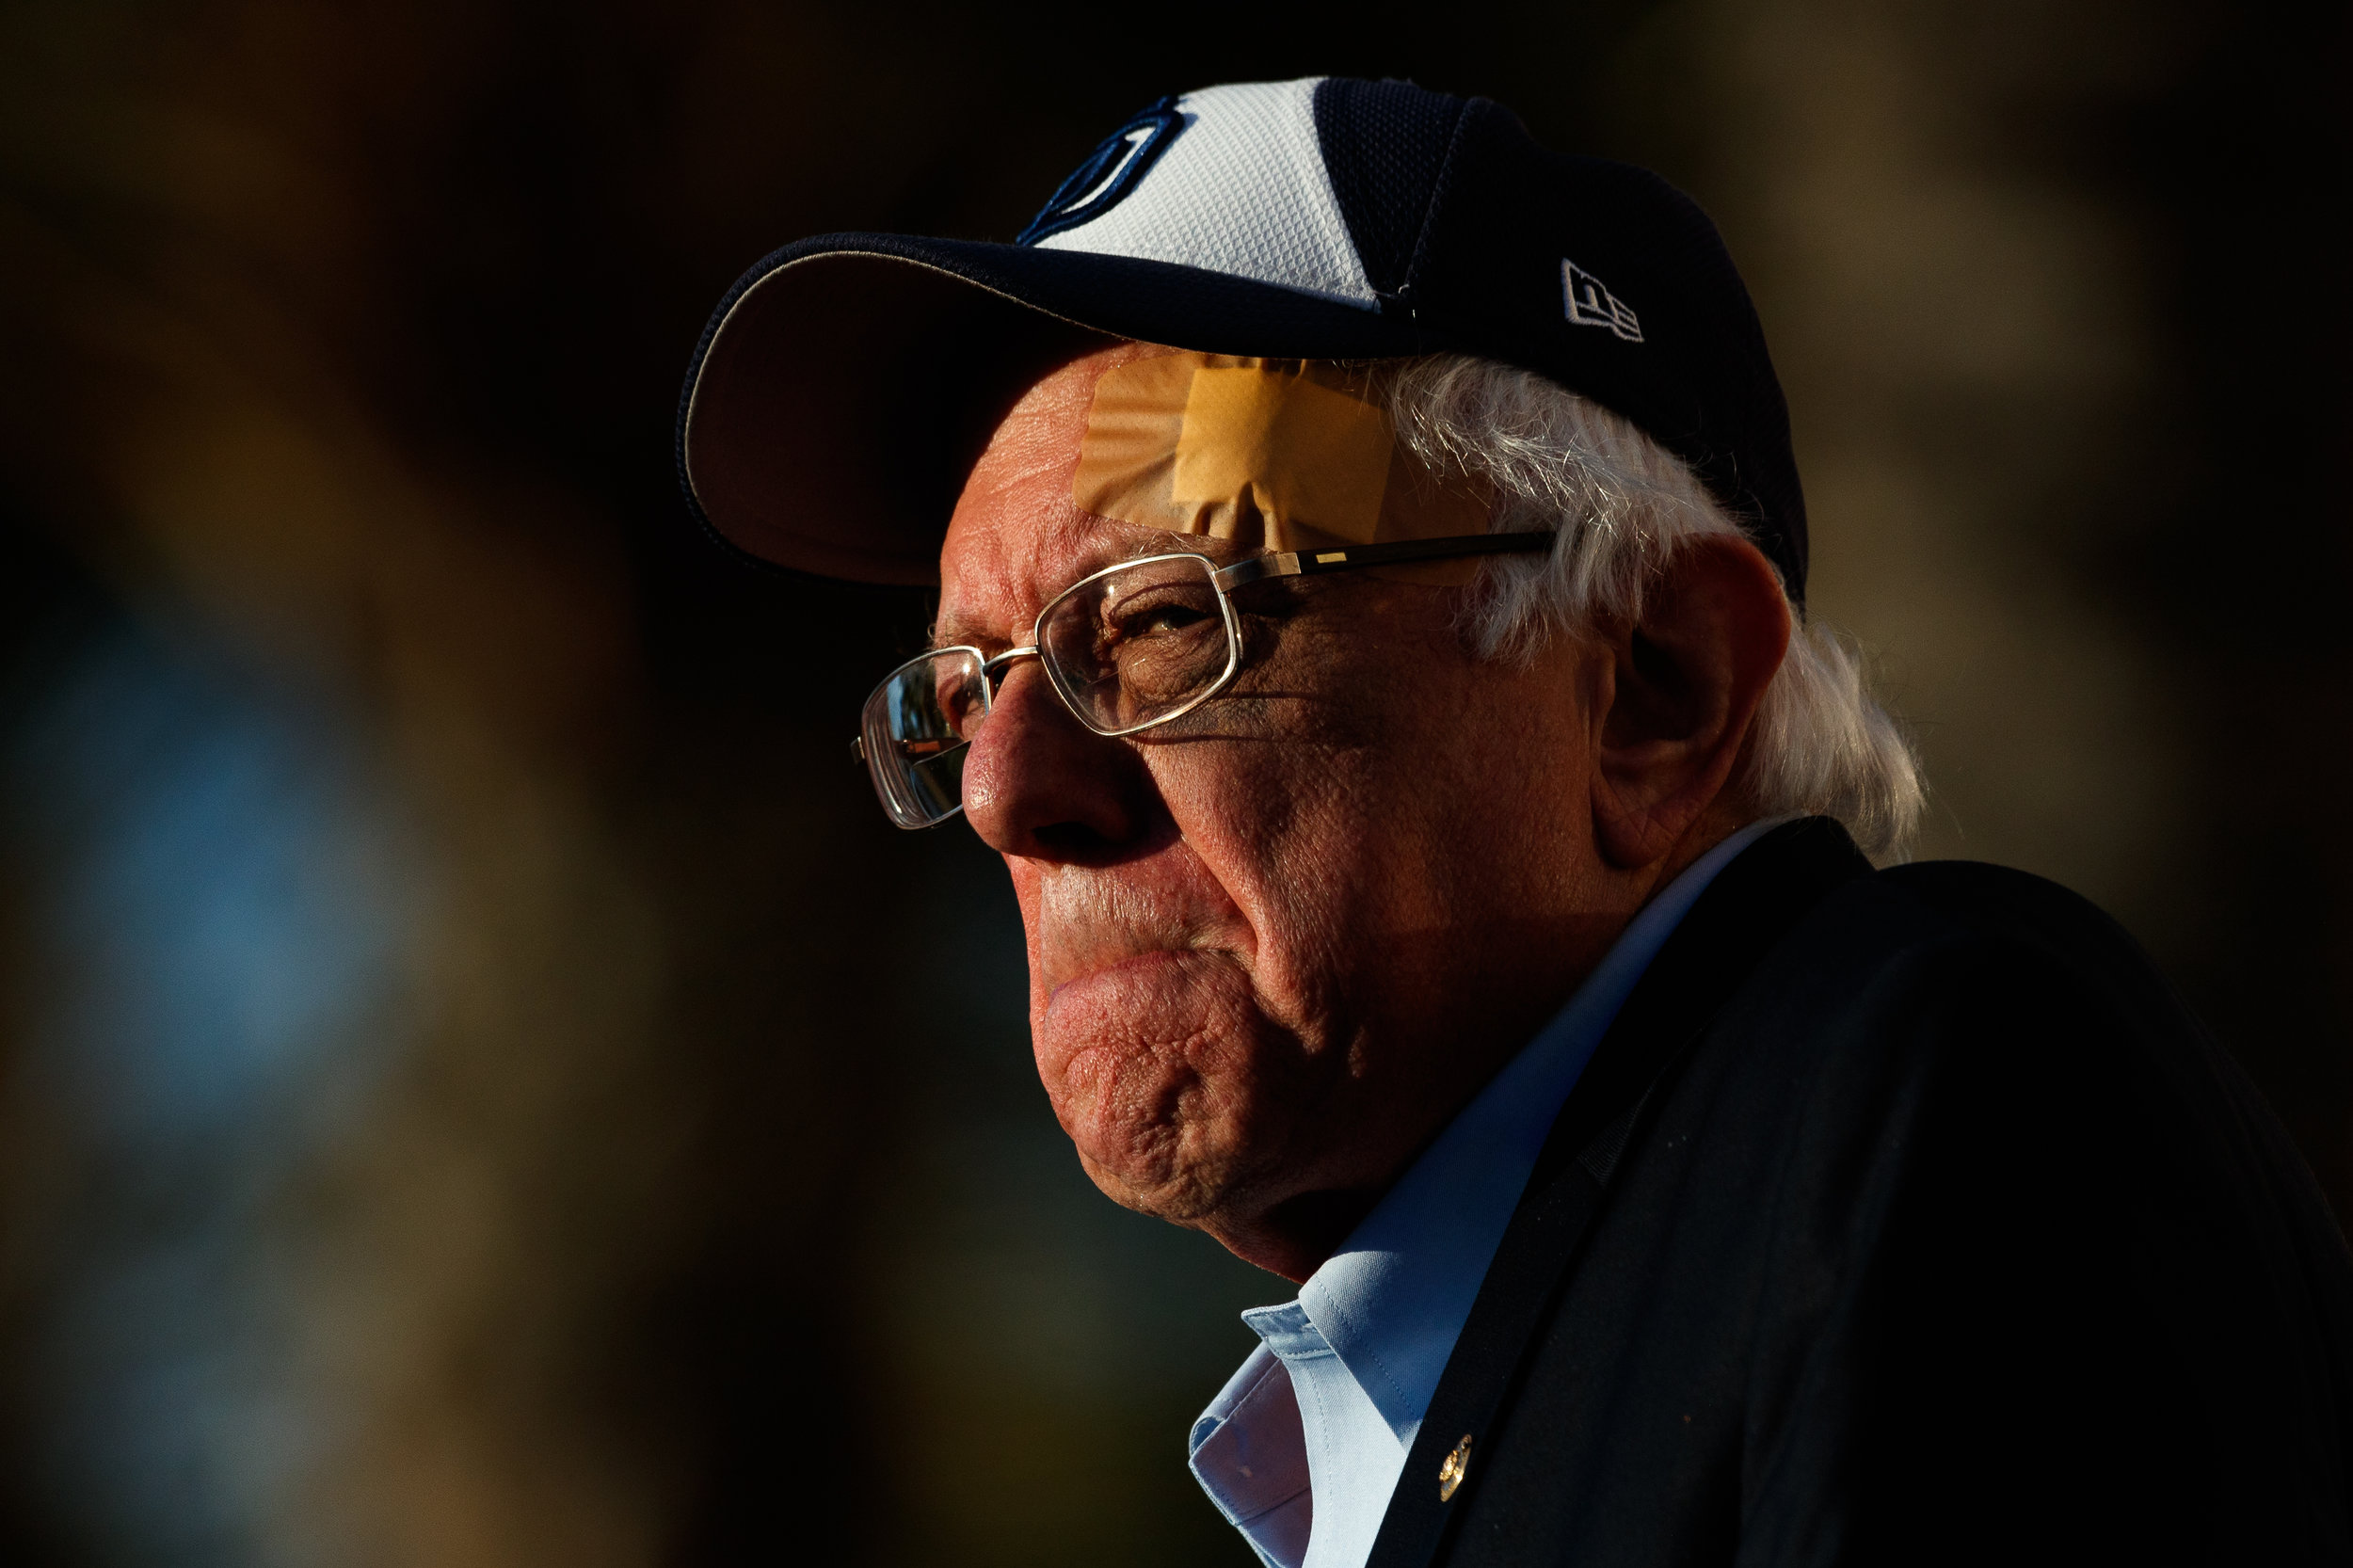 Presidential candidate Bernie Sanders at Waterfront Park in San Diego, Calif. on March 22, 2019. (Photos by Bryan Bennett)